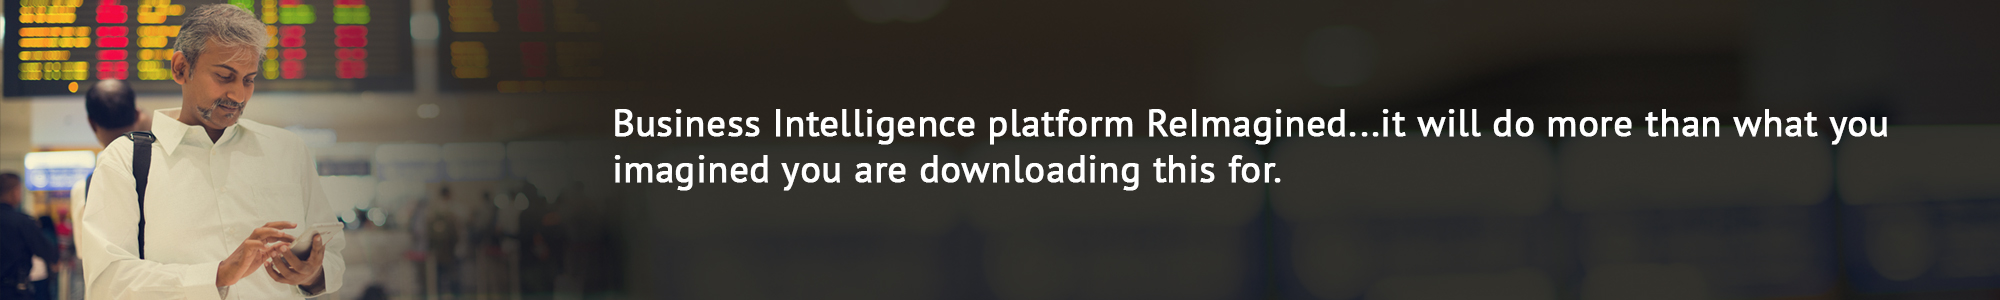 Business Intelligence platform ReImagined...it will do more than what you imagined you are downloading this for.